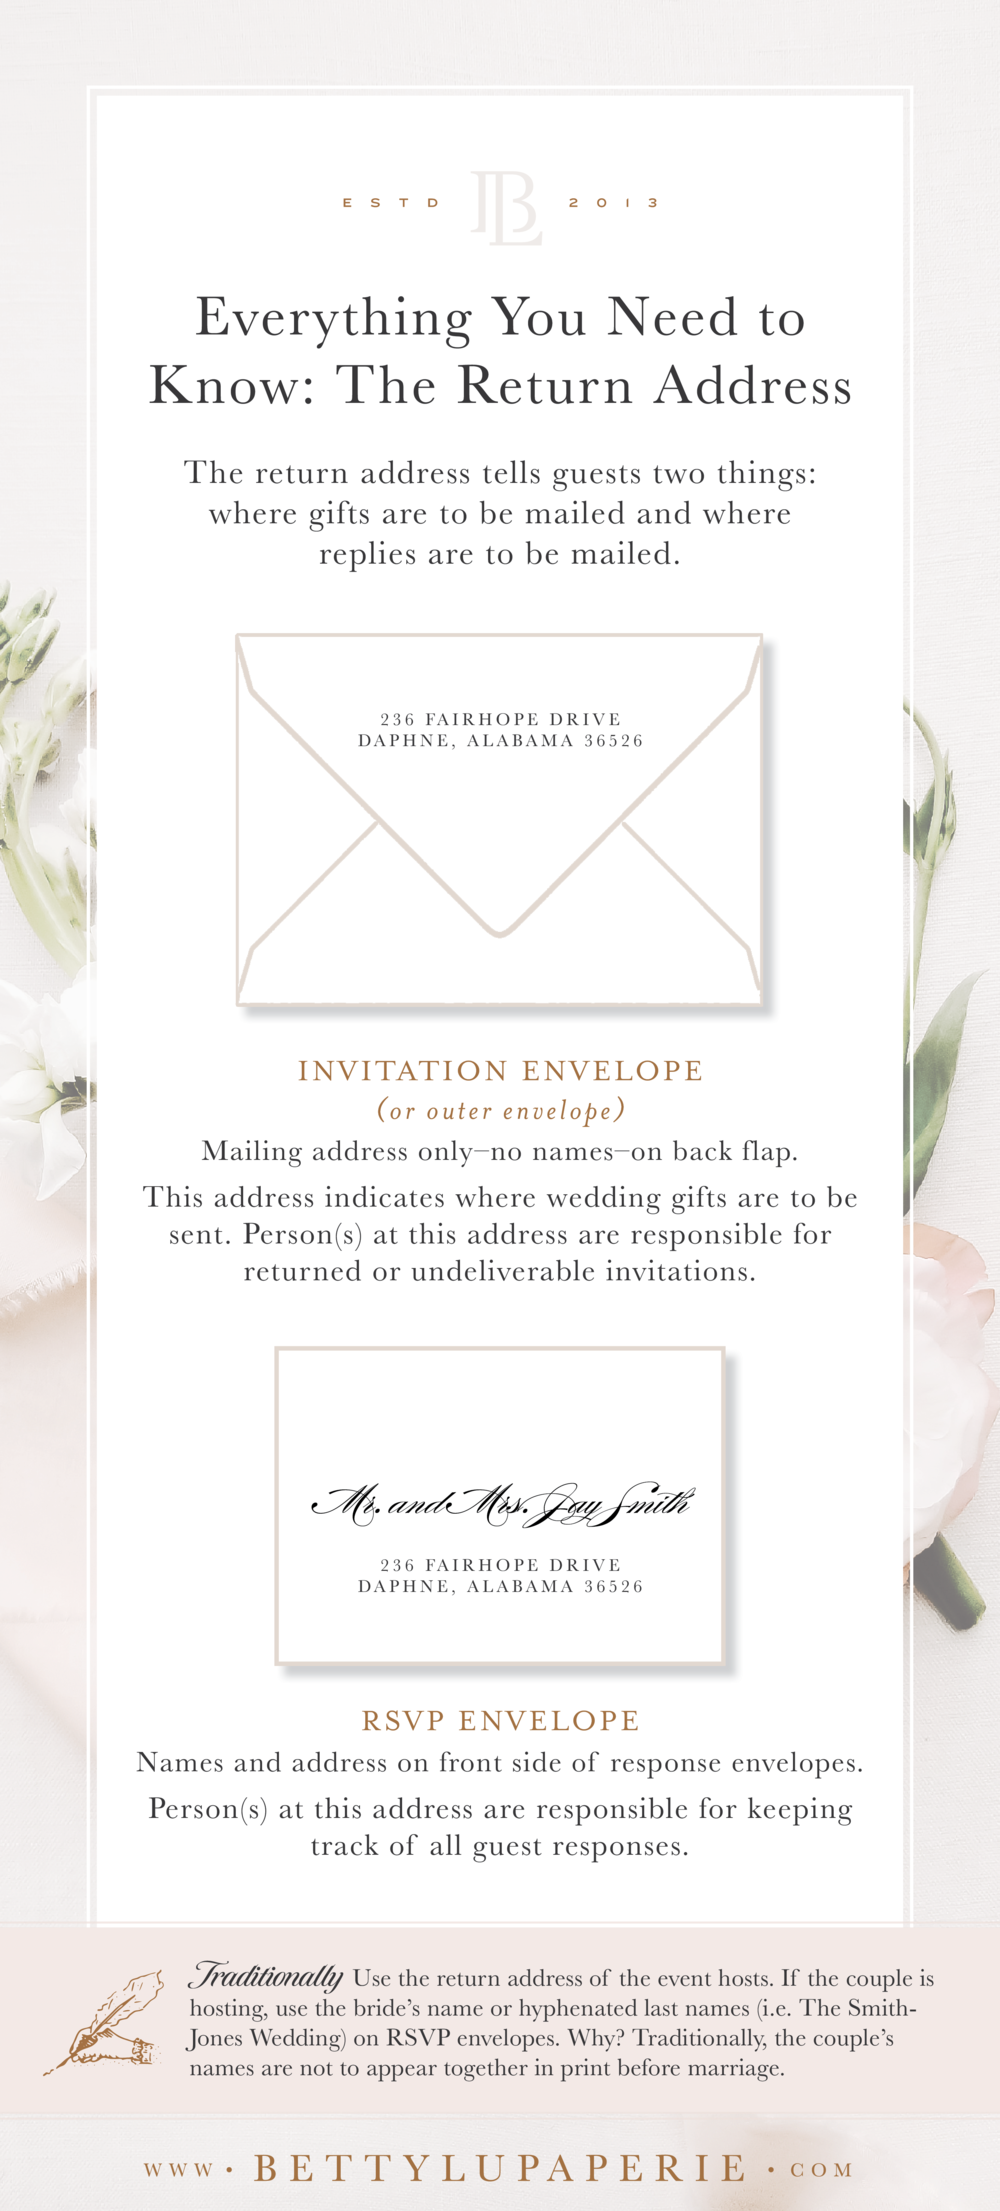 How to Address Wedding Invitations.png